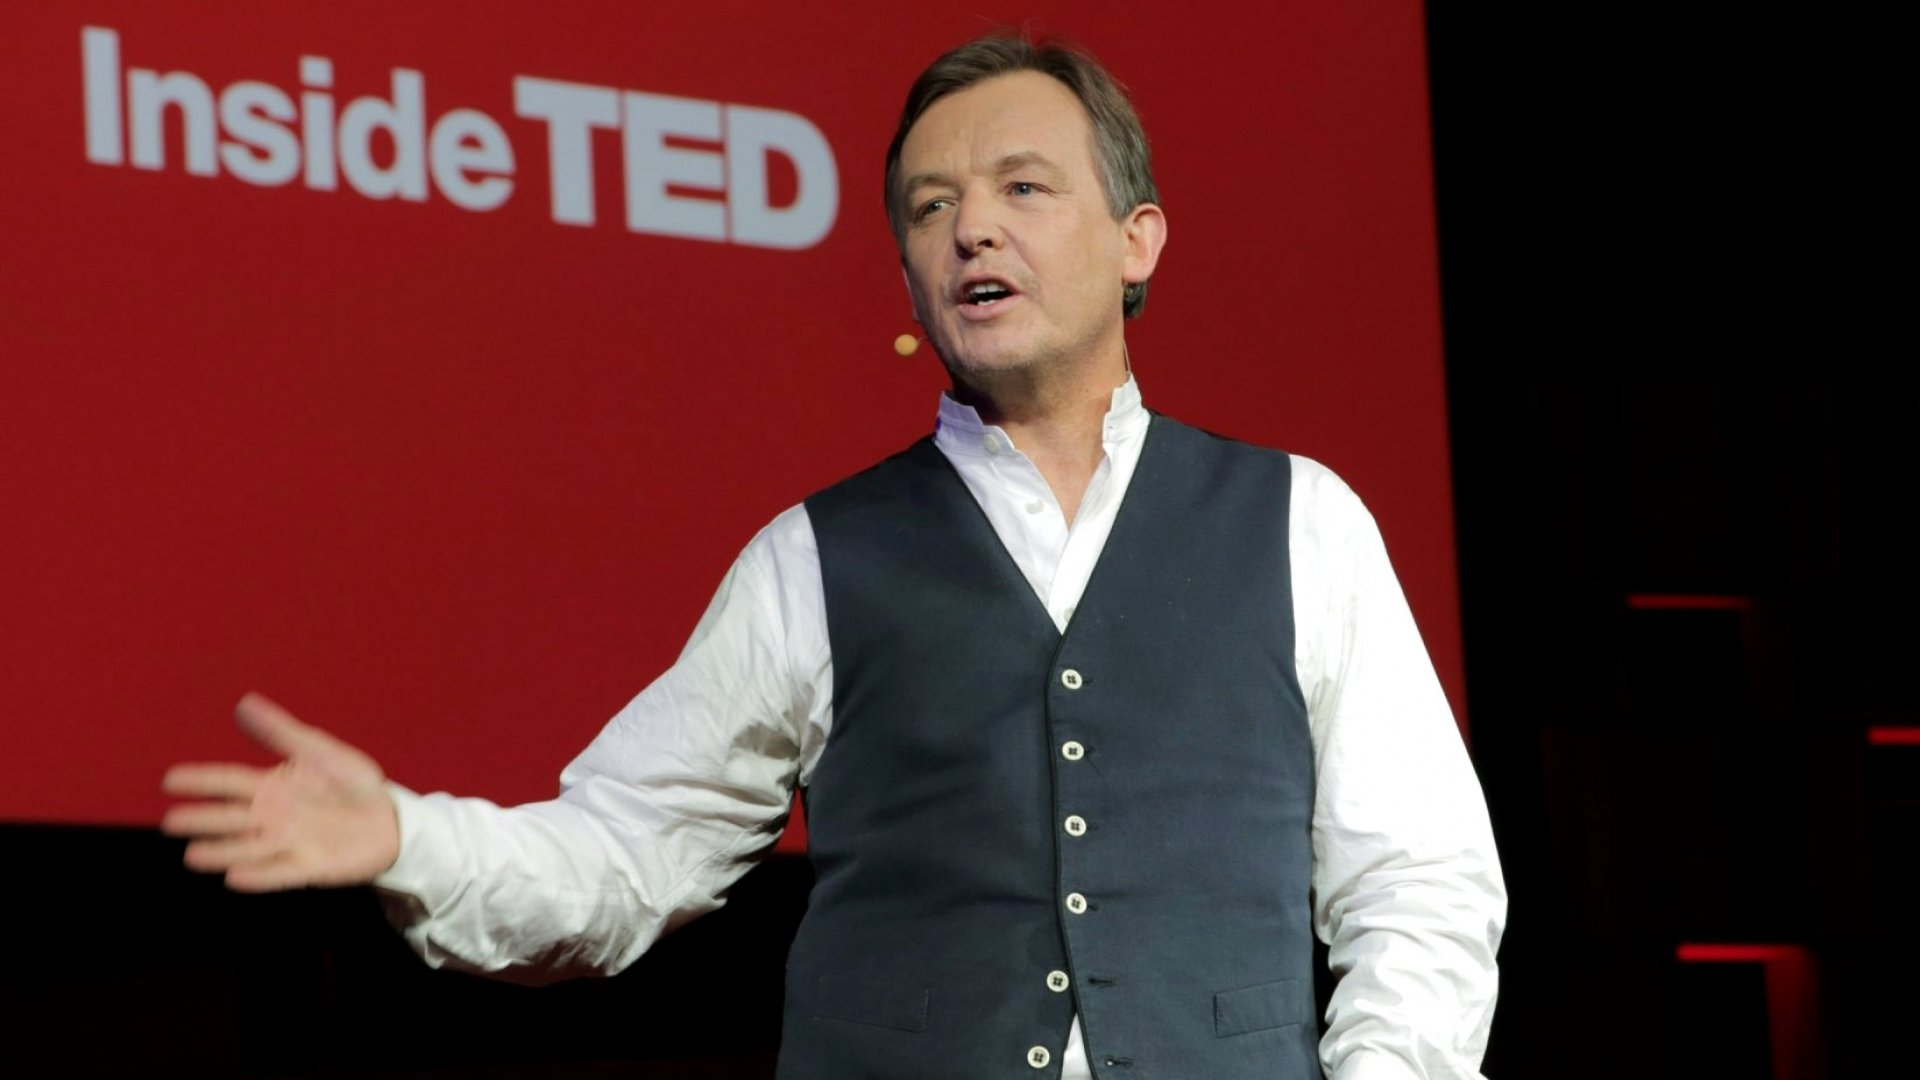 TED Tips on the Best Way to Make an Awful Speech